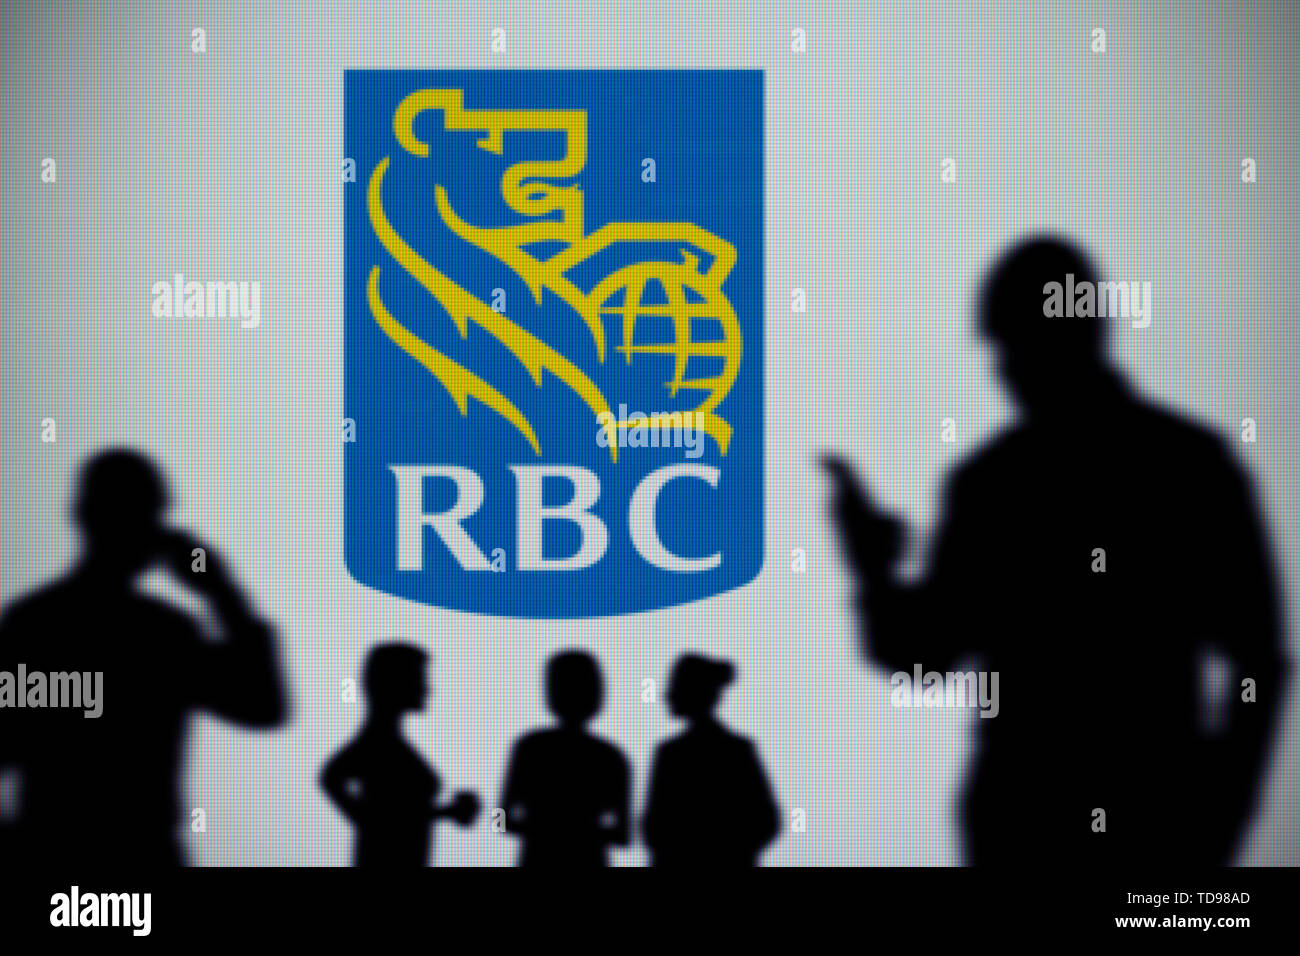 rbc royal bank online chat